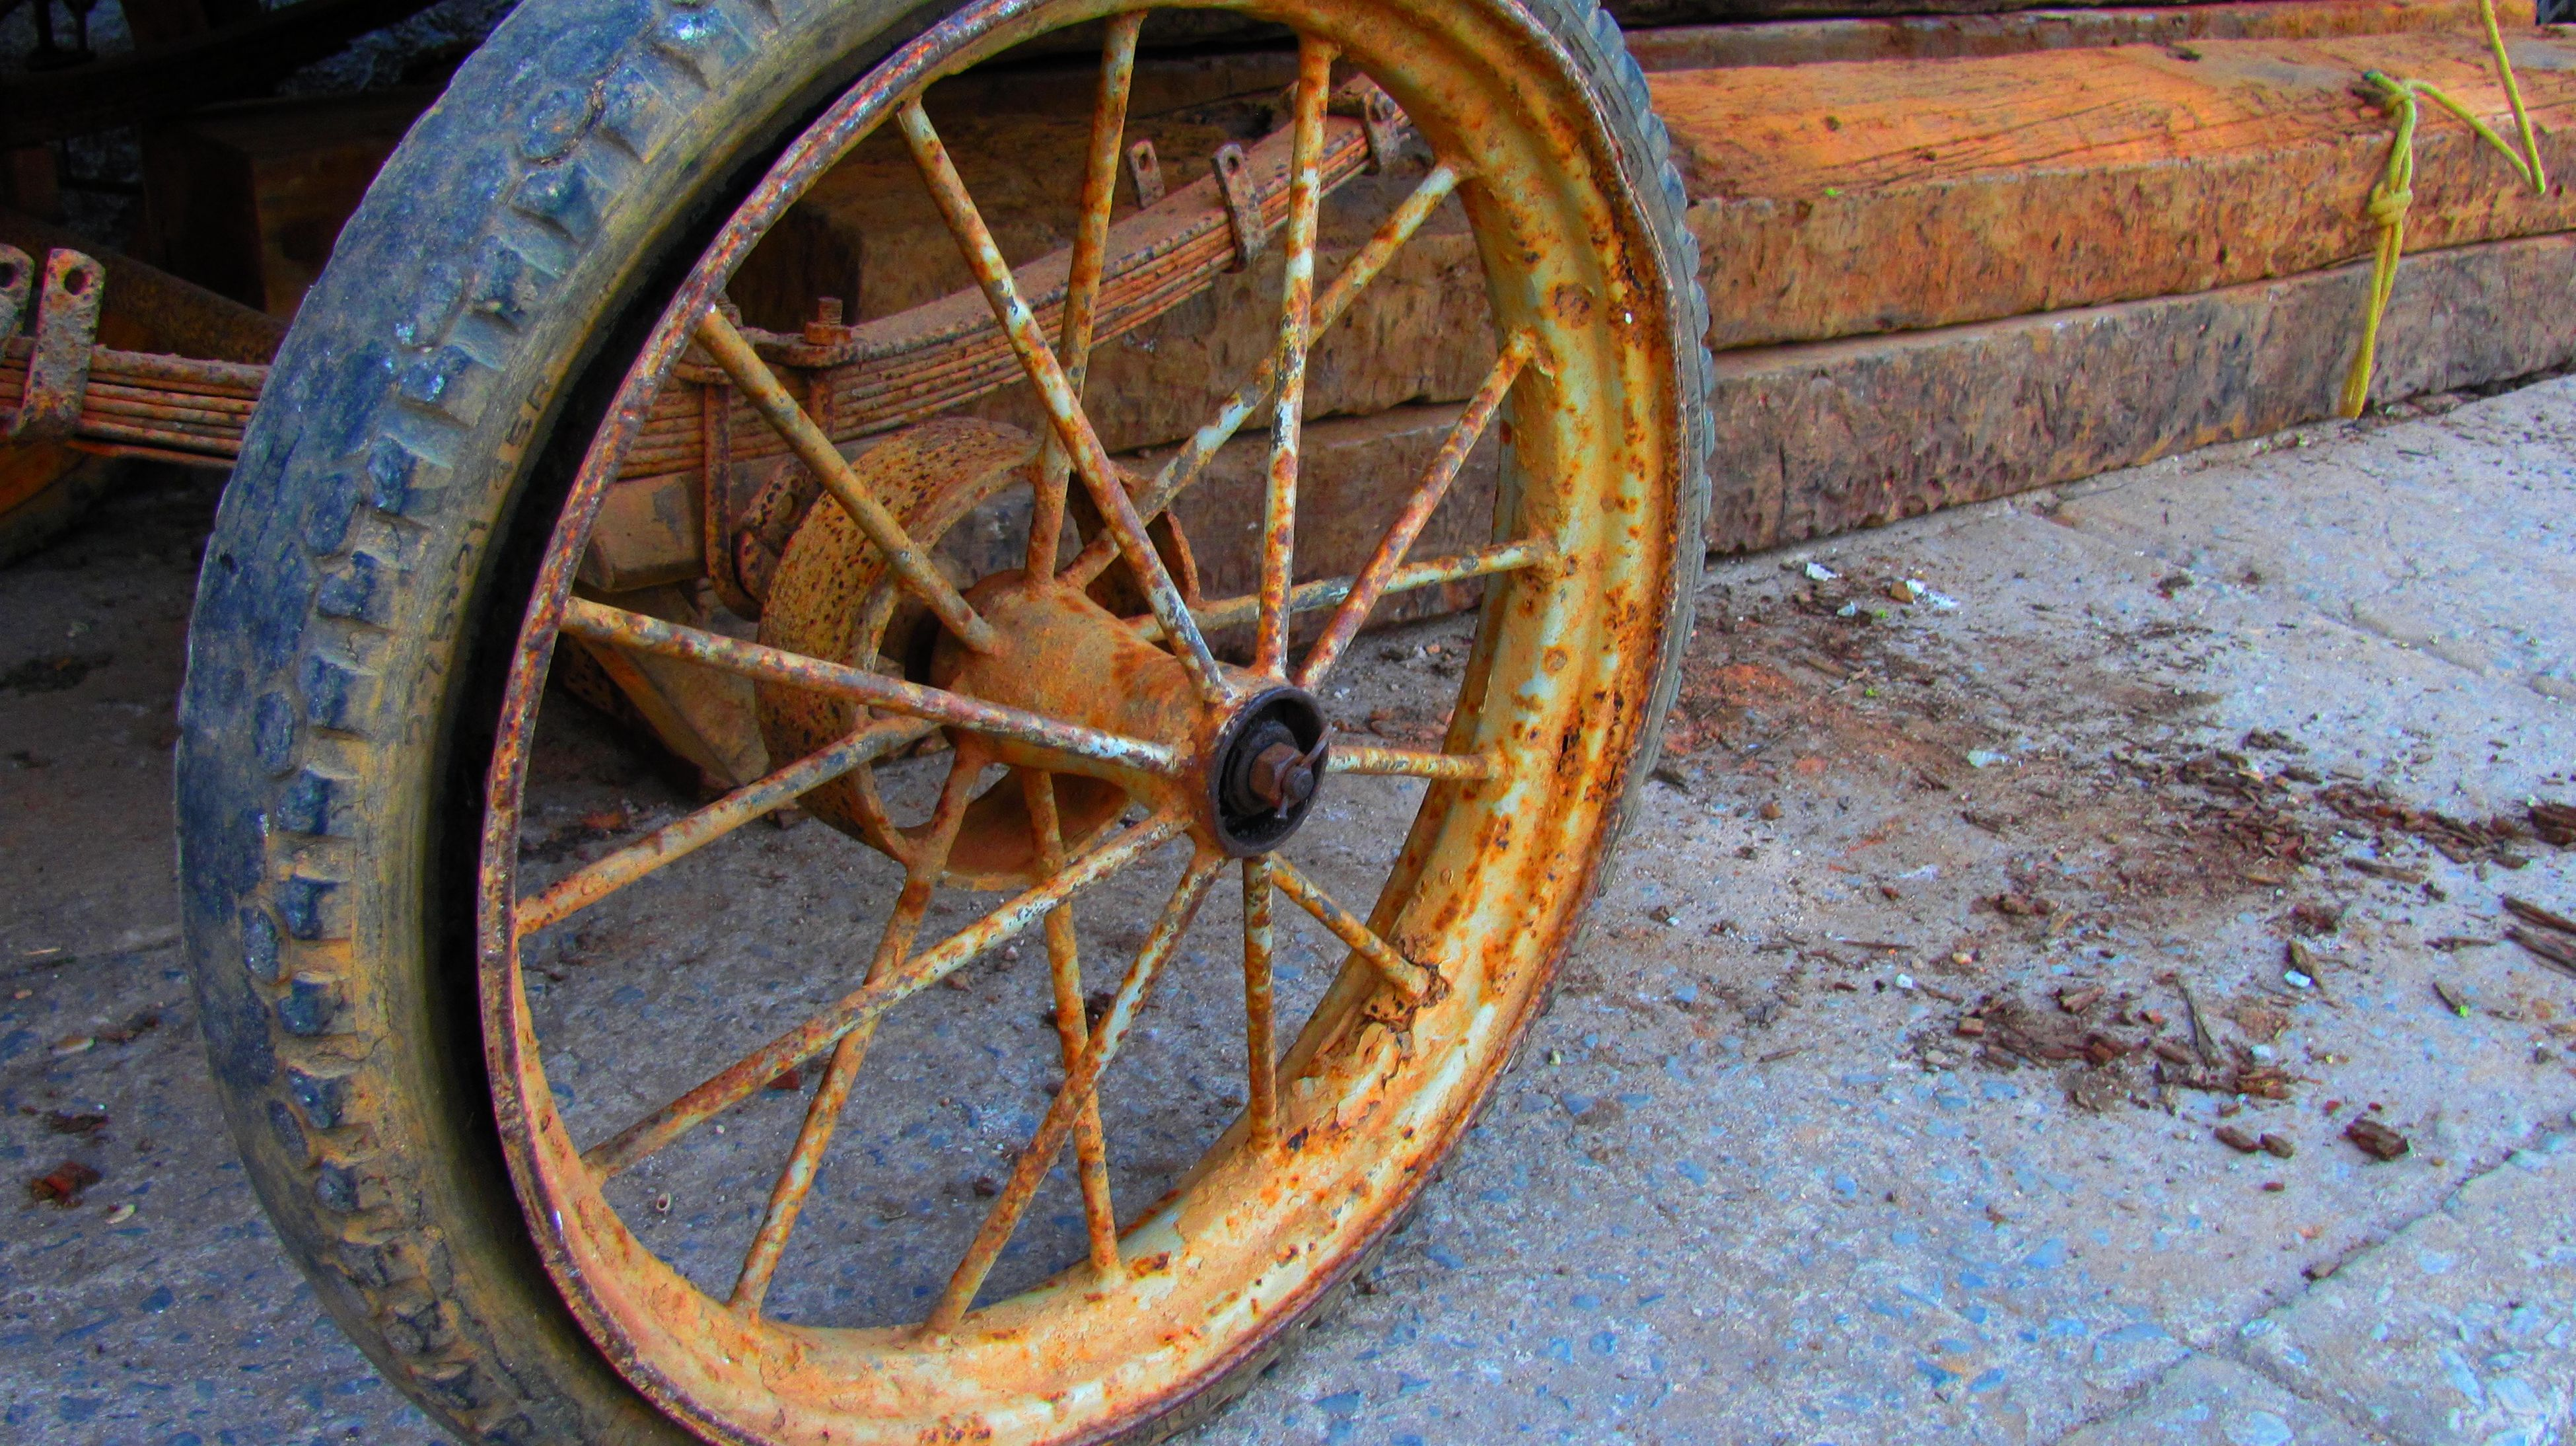 wheel, old, transportation, wagon wheel, abandoned, old-fashioned, rusty, damaged, no people, obsolete, bad condition, day, spoke, outdoors, close-up